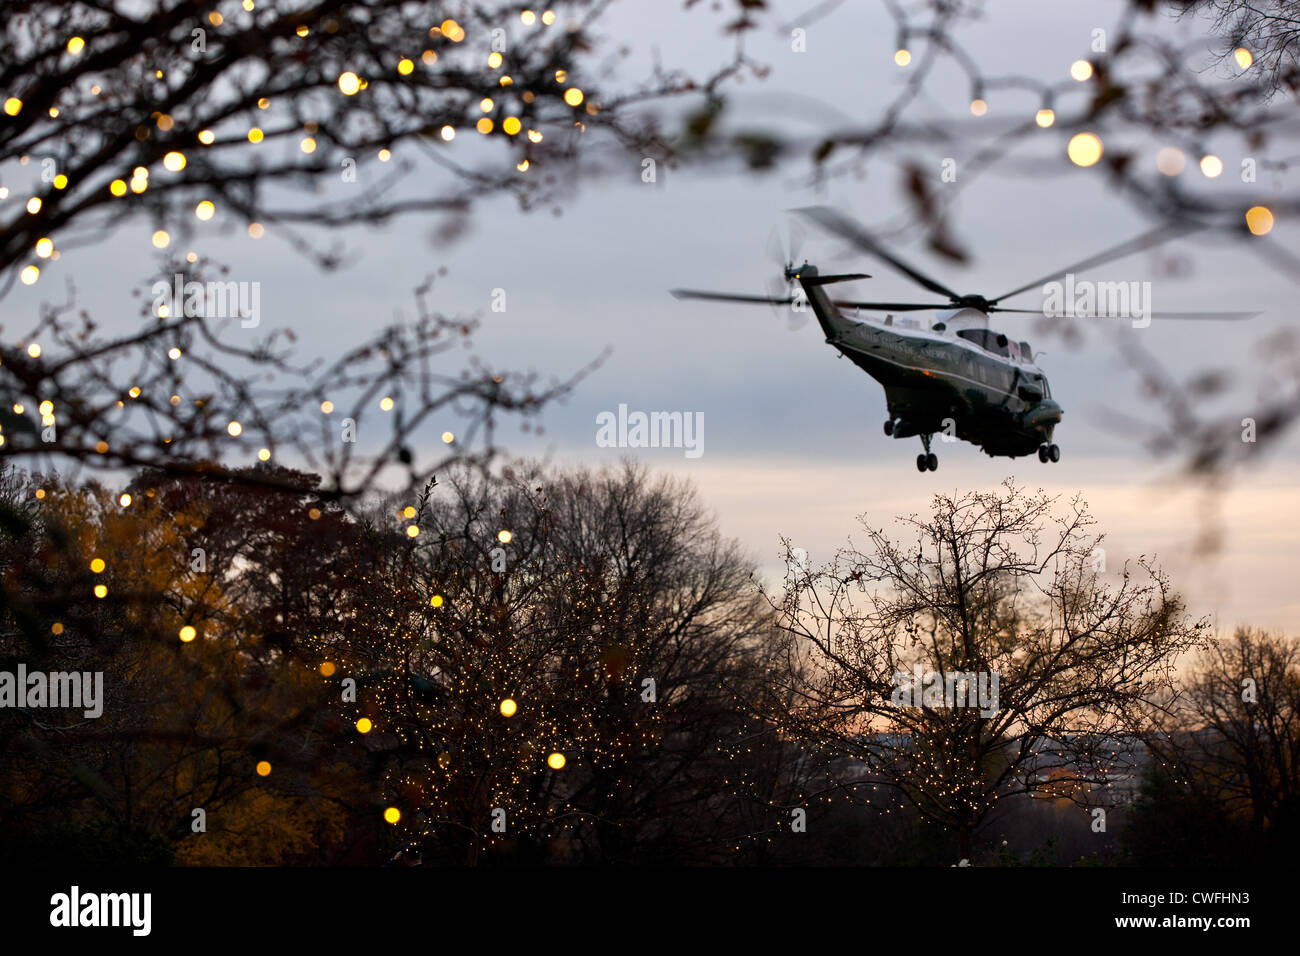 Marine One departs the South Lawn of the White House, Nov. 26, 2011. (Official White House Photo by Pete Souza) - Stock Image